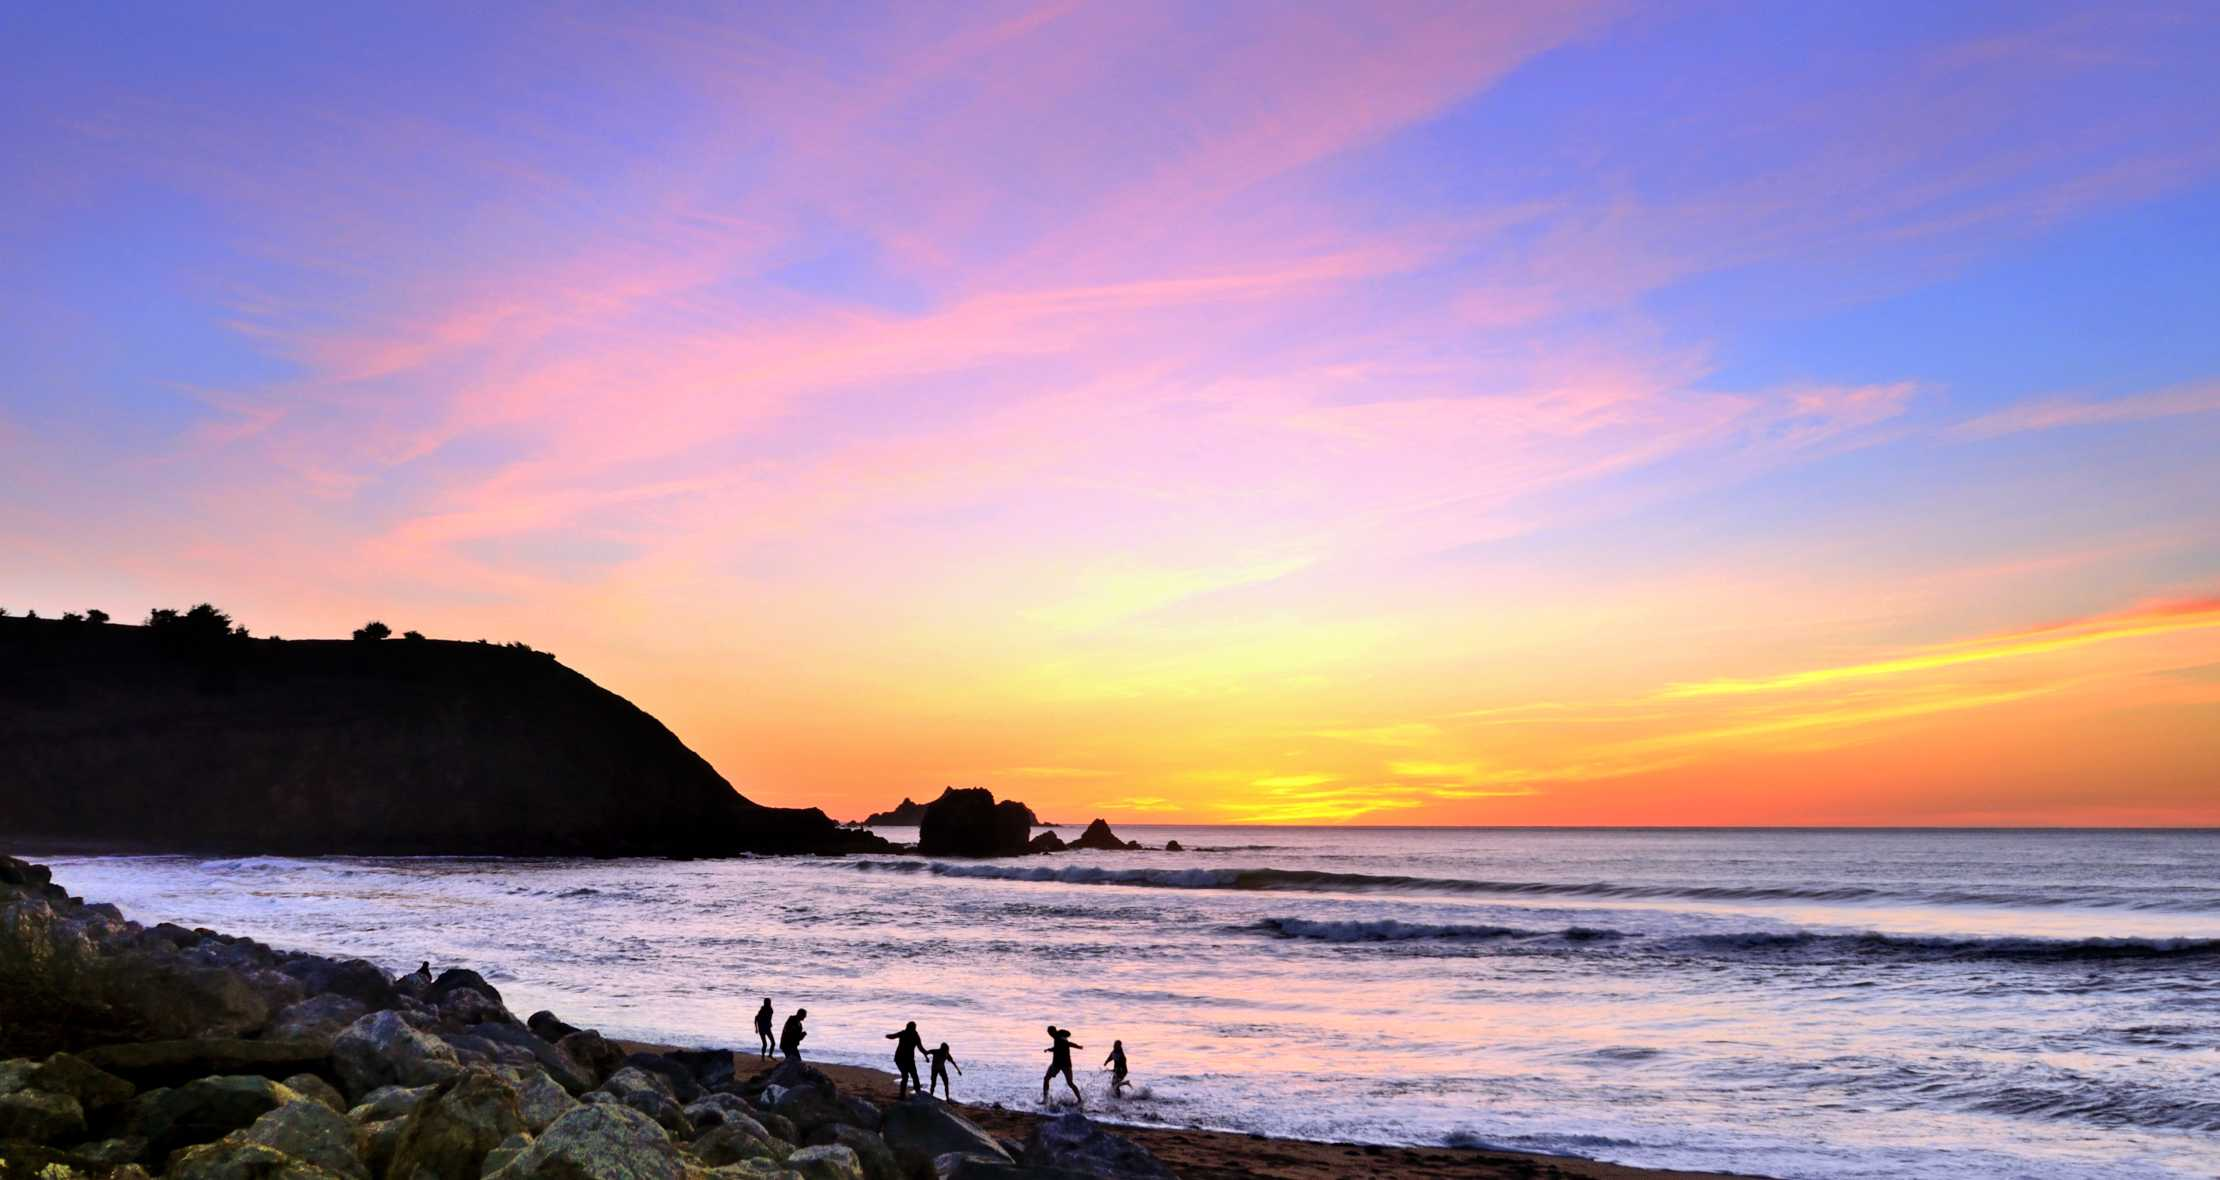 San Mateo County has beaches, museums, and more